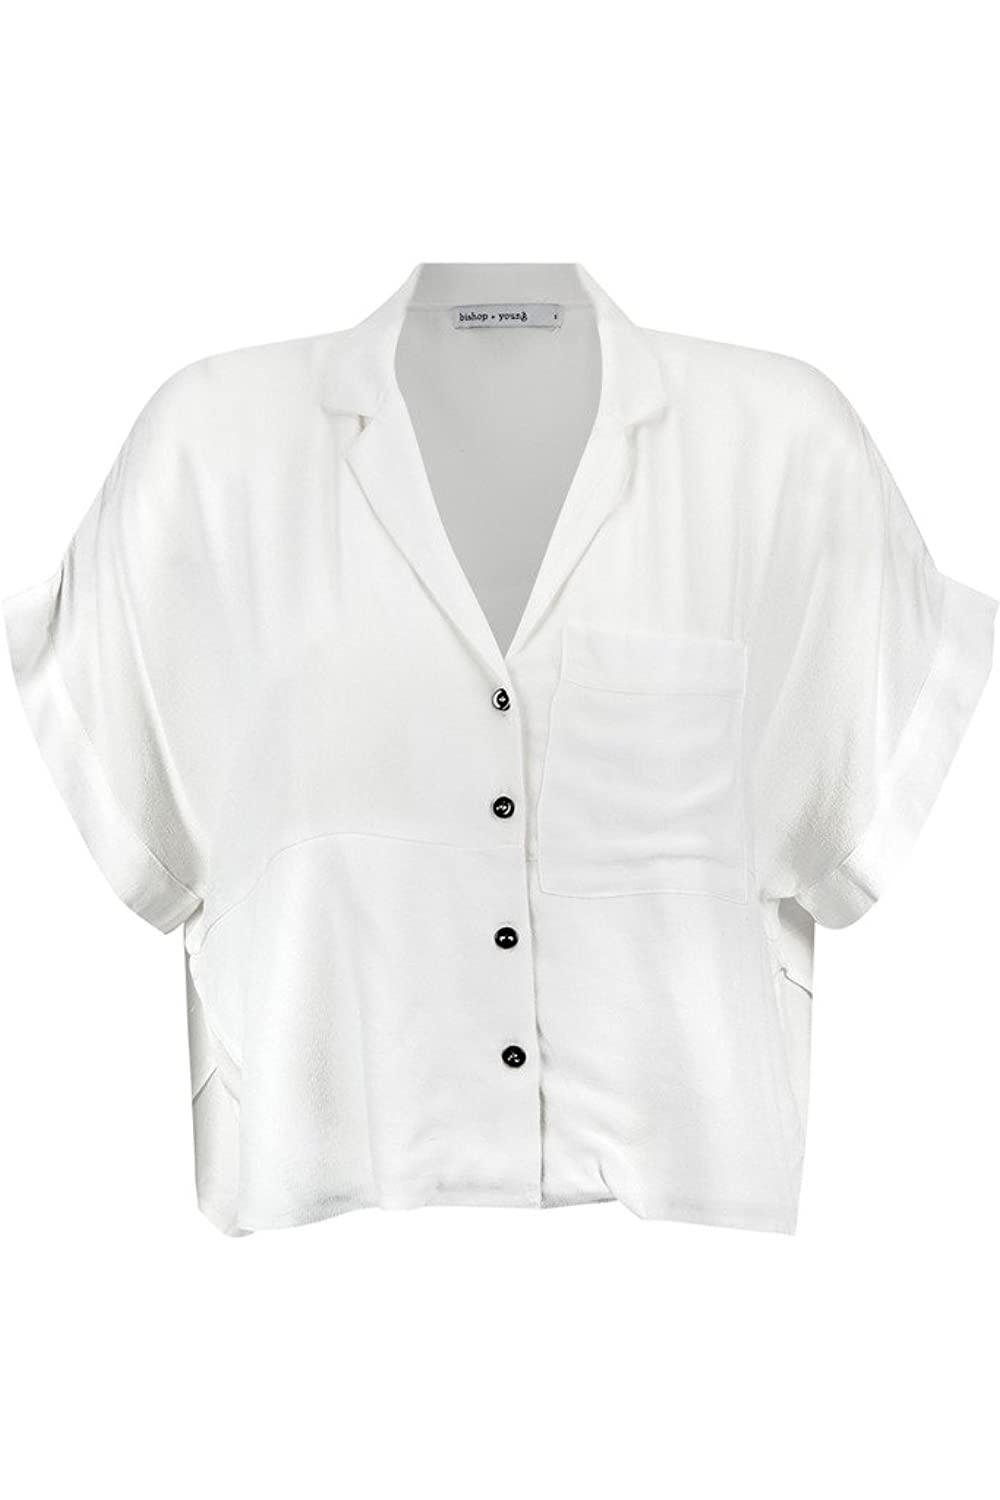 Bishop + Young Womens Button Down Crop With Pocket